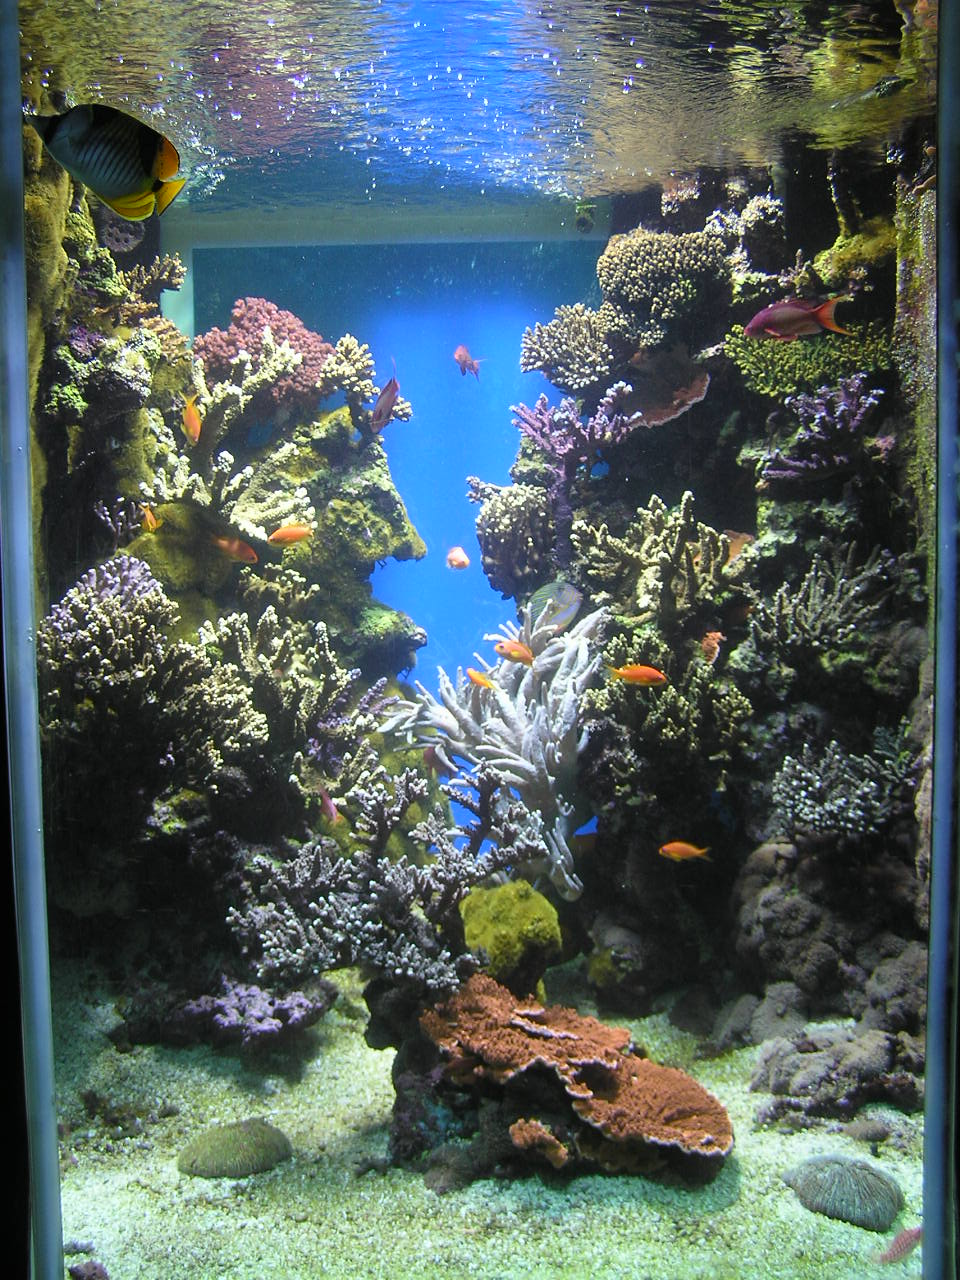 Reef aquarium wikipedia for Marine fish tanks